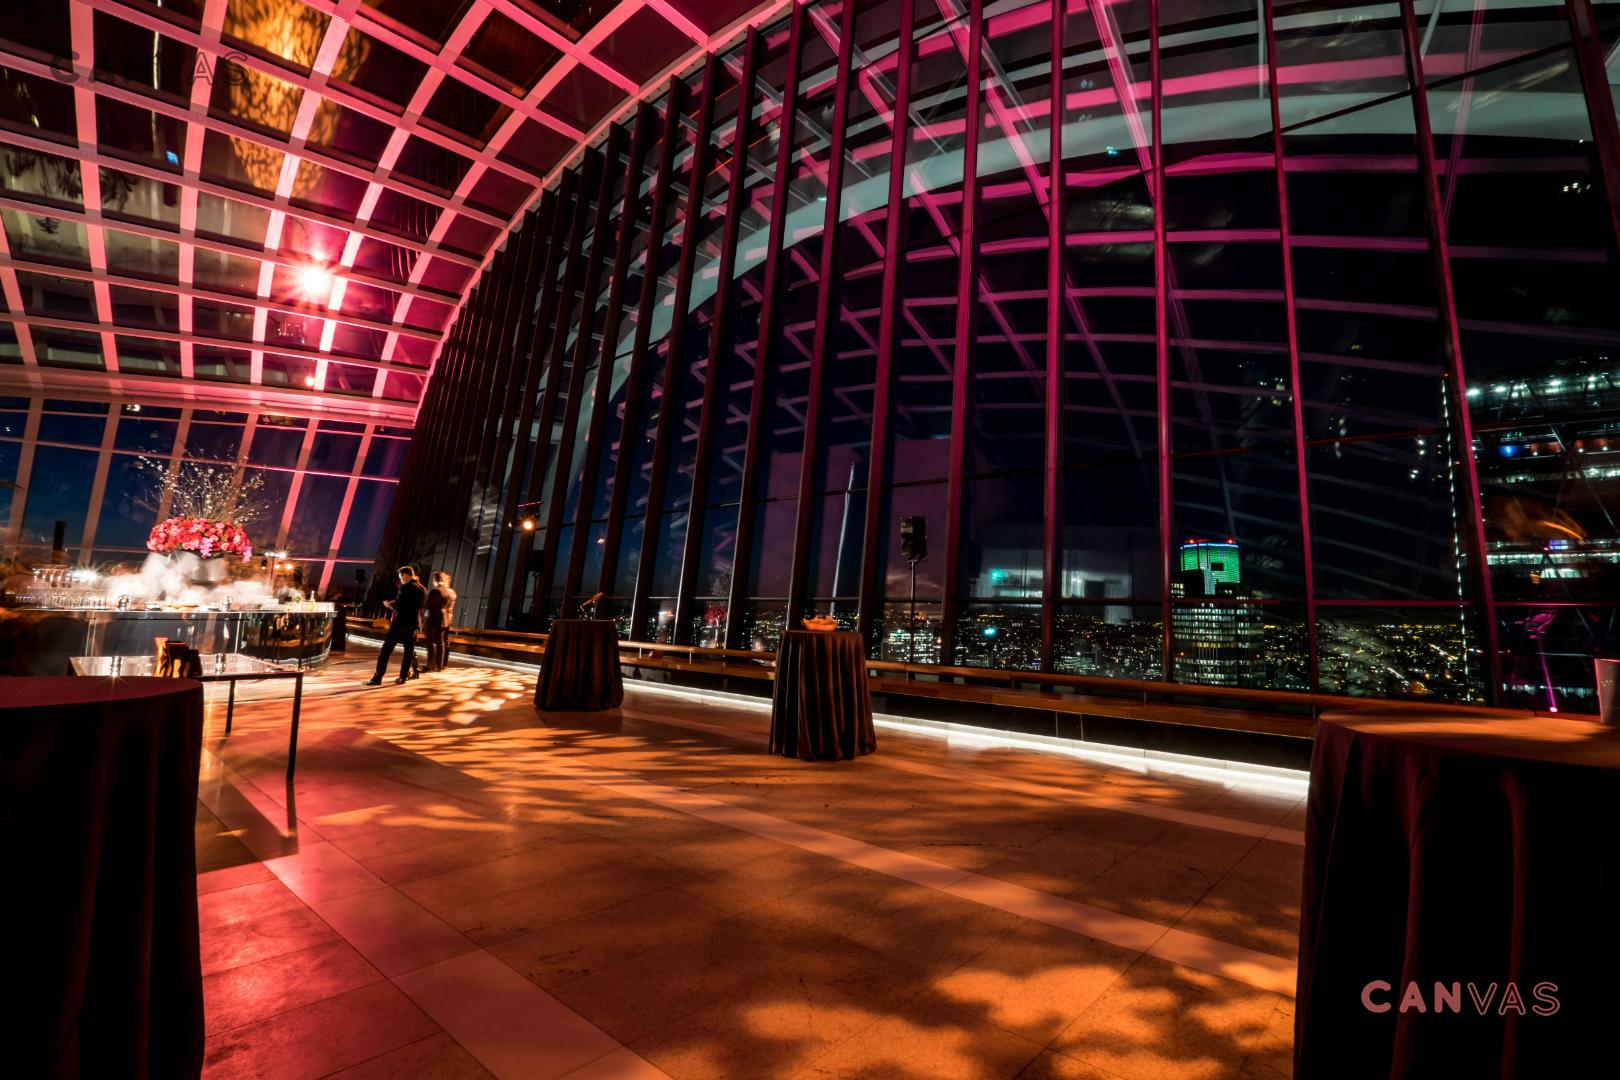 Winsome Sky Garden  Sky Garden Spans Three Storeys And Boasts  With Extraordinary Sky Garden  Sky Garden Spans Three Storeys And Boasts Londonrsquos  Highest Landscaped Public Gard  London Venue Hire With Alluring Argos Garden Trellis Planters Also Winter Gardens Theatre In Addition Harrods Garden Centre And Primrose Bakery Covent Garden As Well As In The Night Garden Episode Additionally Summer Garden Party Menu Ideas From Canvaseventscouk With   Alluring Sky Garden  Sky Garden Spans Three Storeys And Boasts  With Winsome Primrose Bakery Covent Garden As Well As In The Night Garden Episode Additionally Summer Garden Party Menu Ideas And Extraordinary Sky Garden  Sky Garden Spans Three Storeys And Boasts Londonrsquos  Highest Landscaped Public Gard  London Venue Hire Via Canvaseventscouk